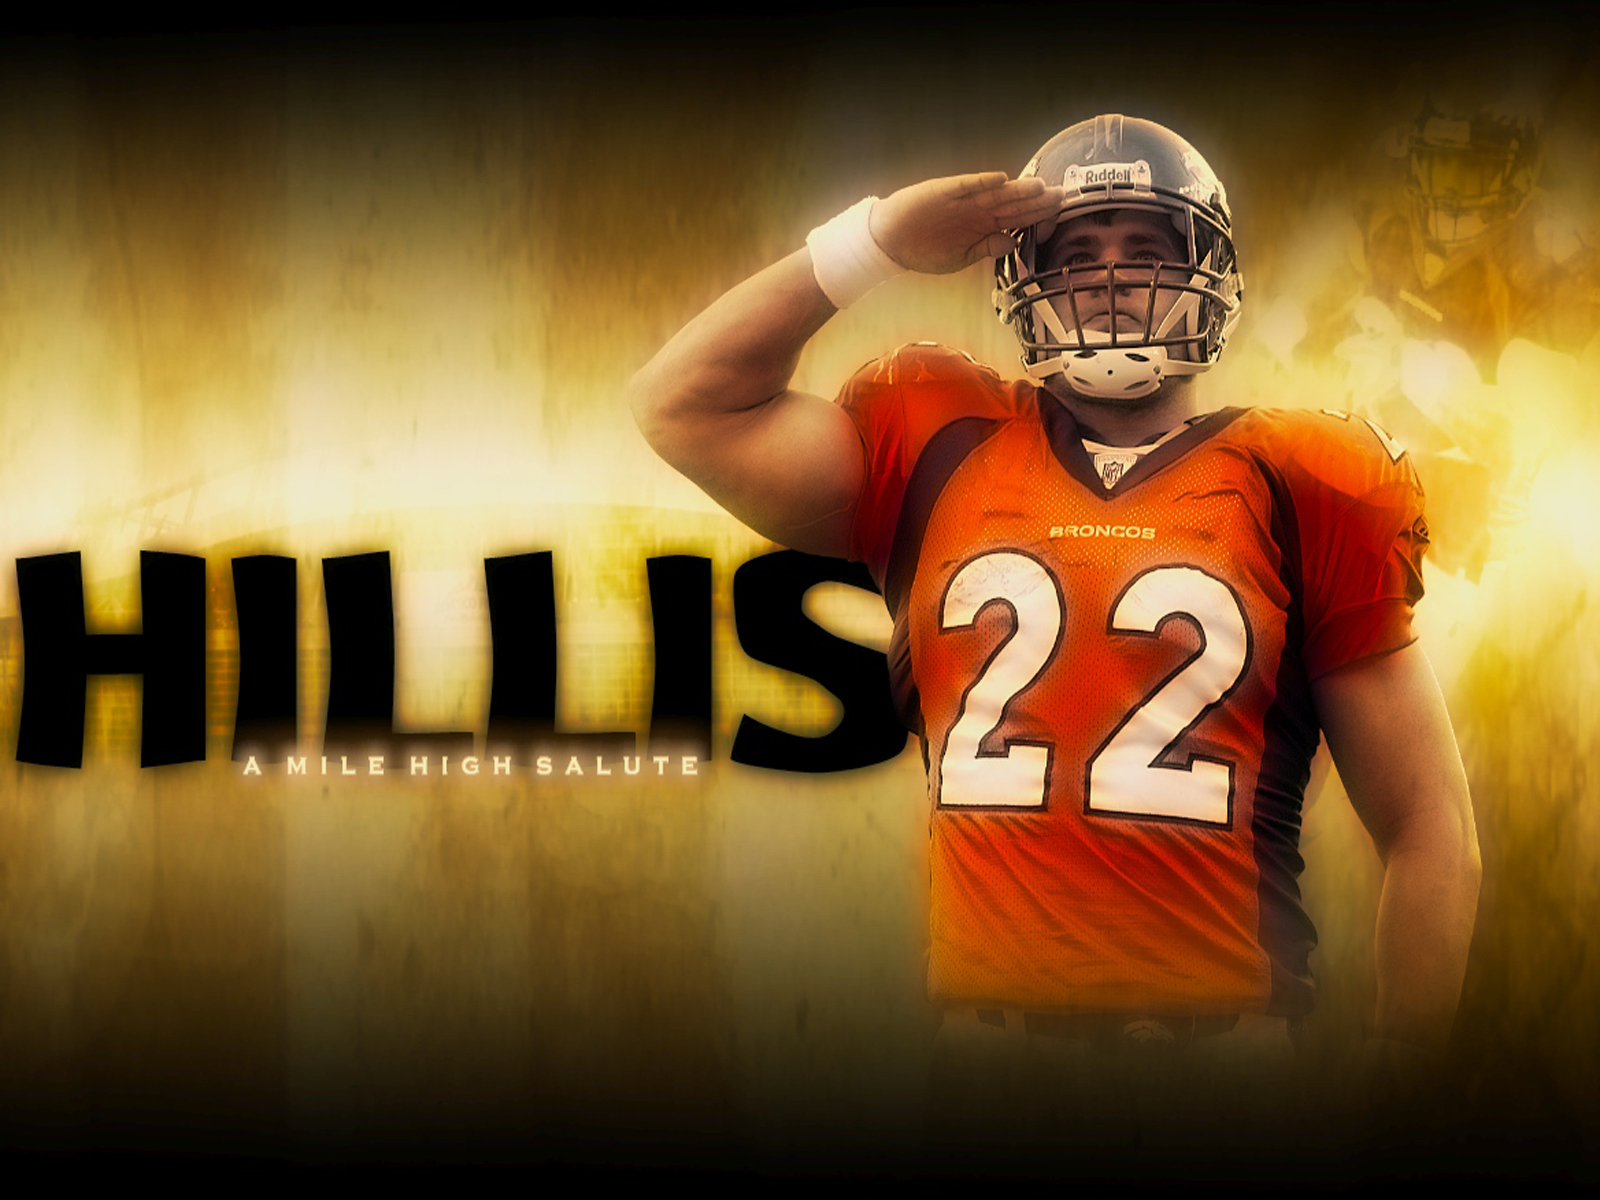 Hillis Cleveland Browns computer desktop wallpapers pictures images 1600x1200